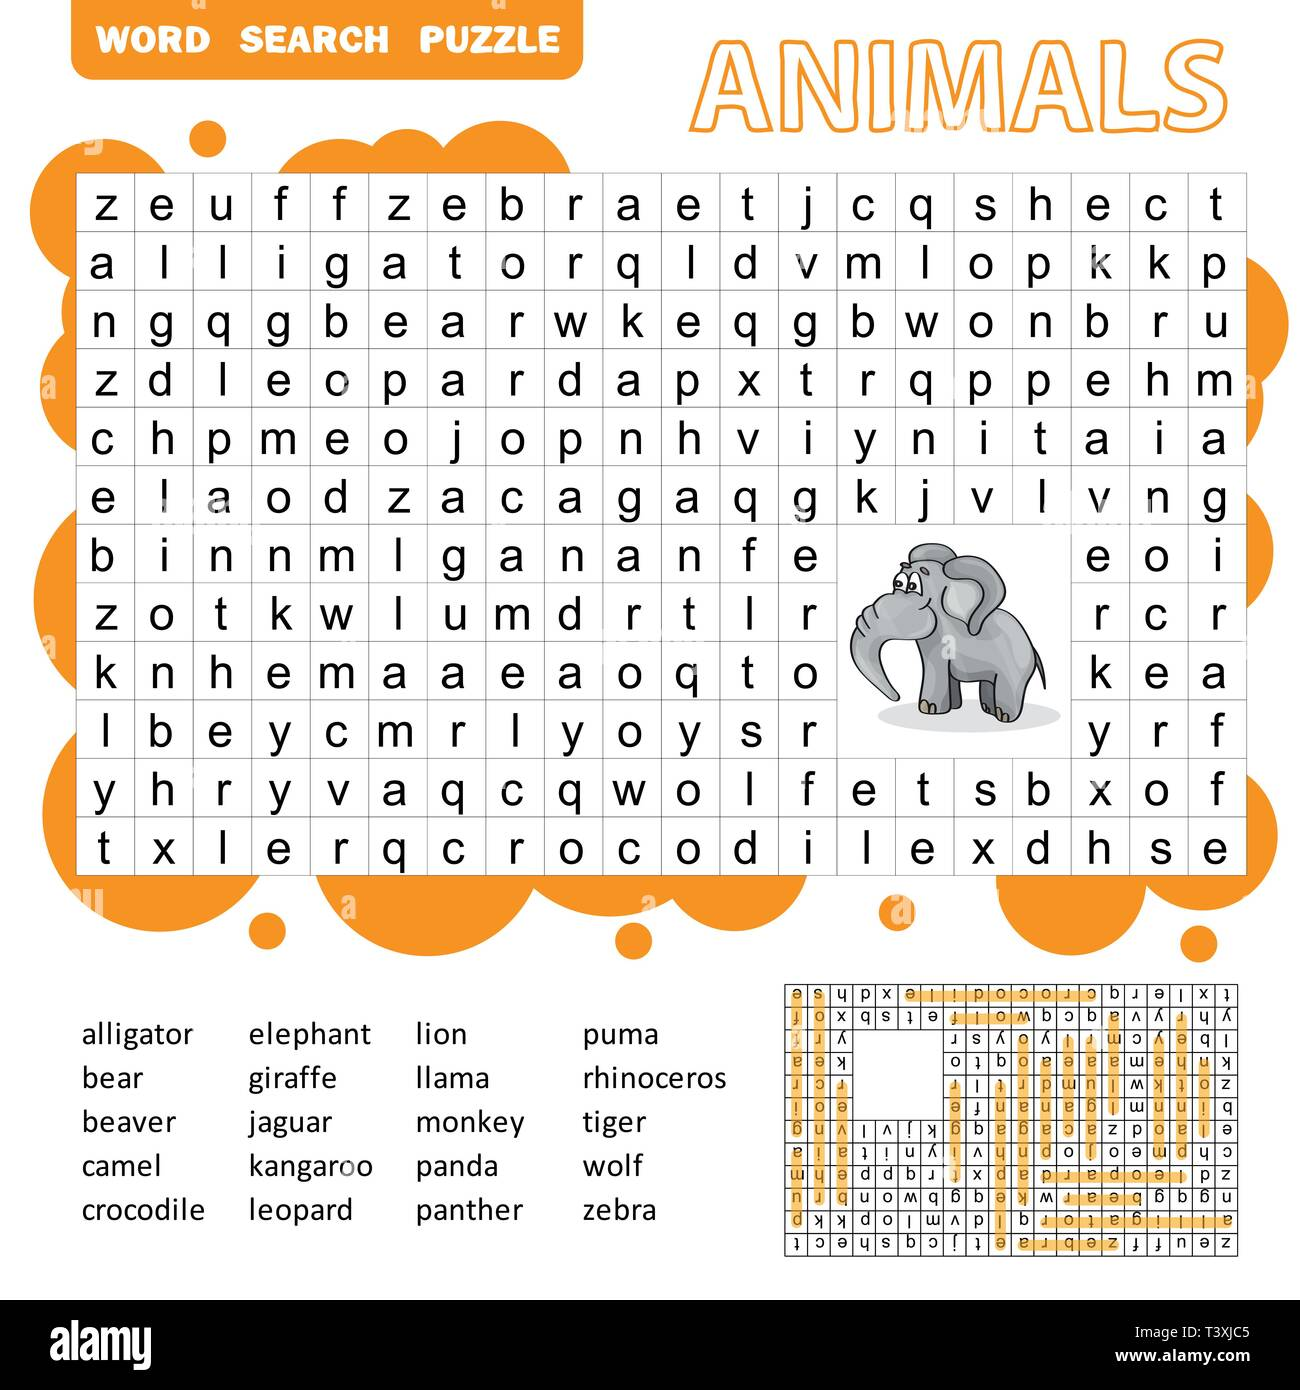 Words Search Puzzle Game Of Animals For Preschool Kids